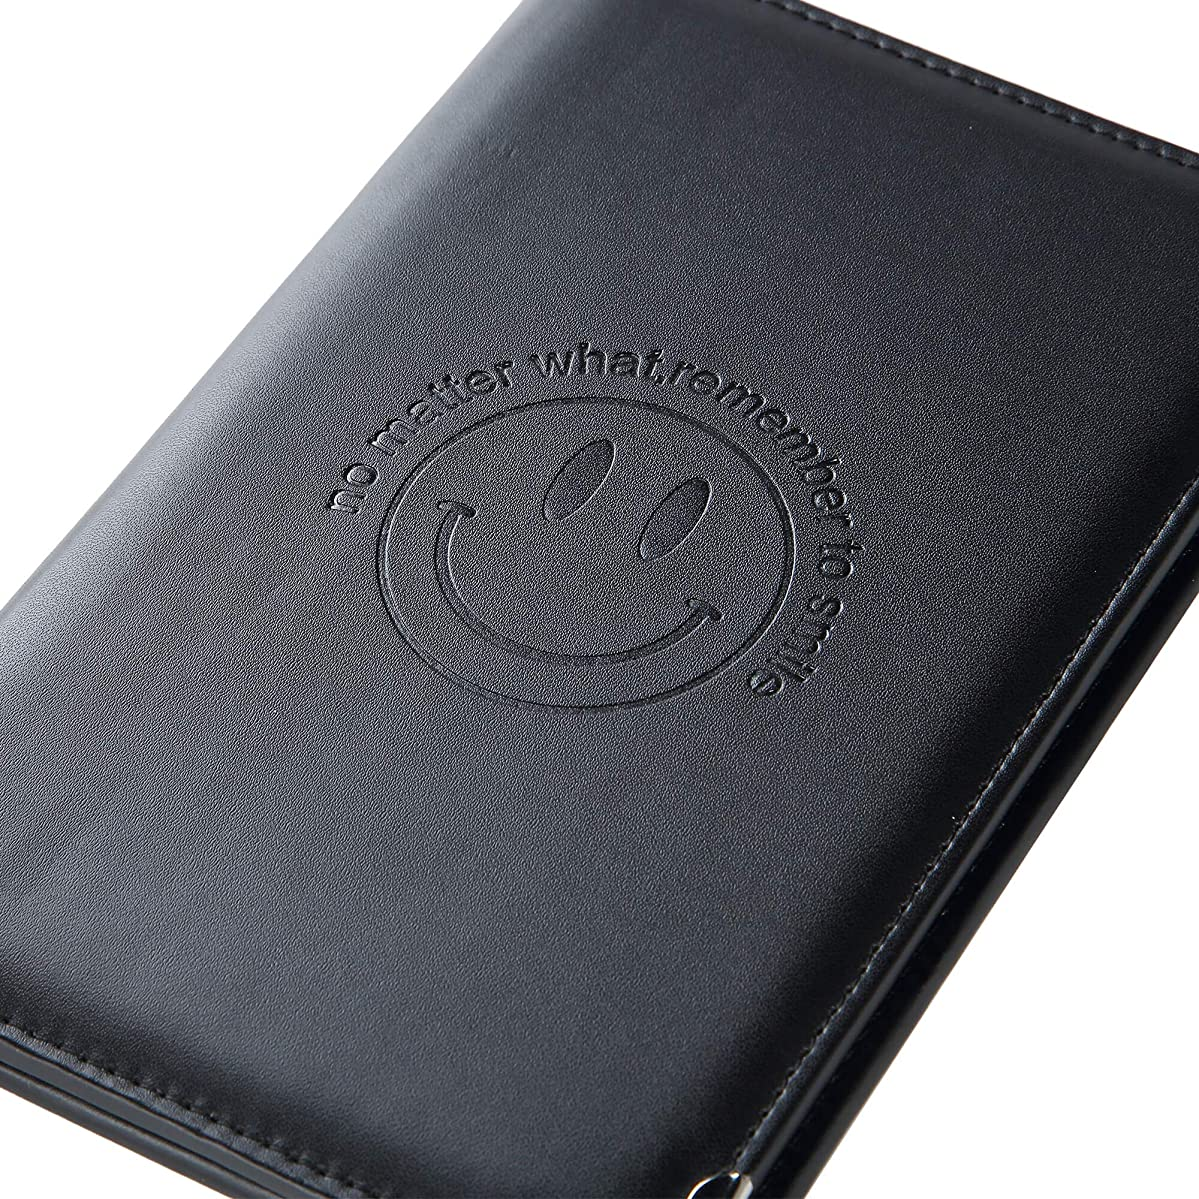 Leather Server Book Organizer - for Restaurant Waiter Waitress Waitstaff   Comfortably Fits in Apron   9 Pockets Includes Zipper Pouch with Pen Holder   Holds Guest Checks, Credit Cards, Money, Order